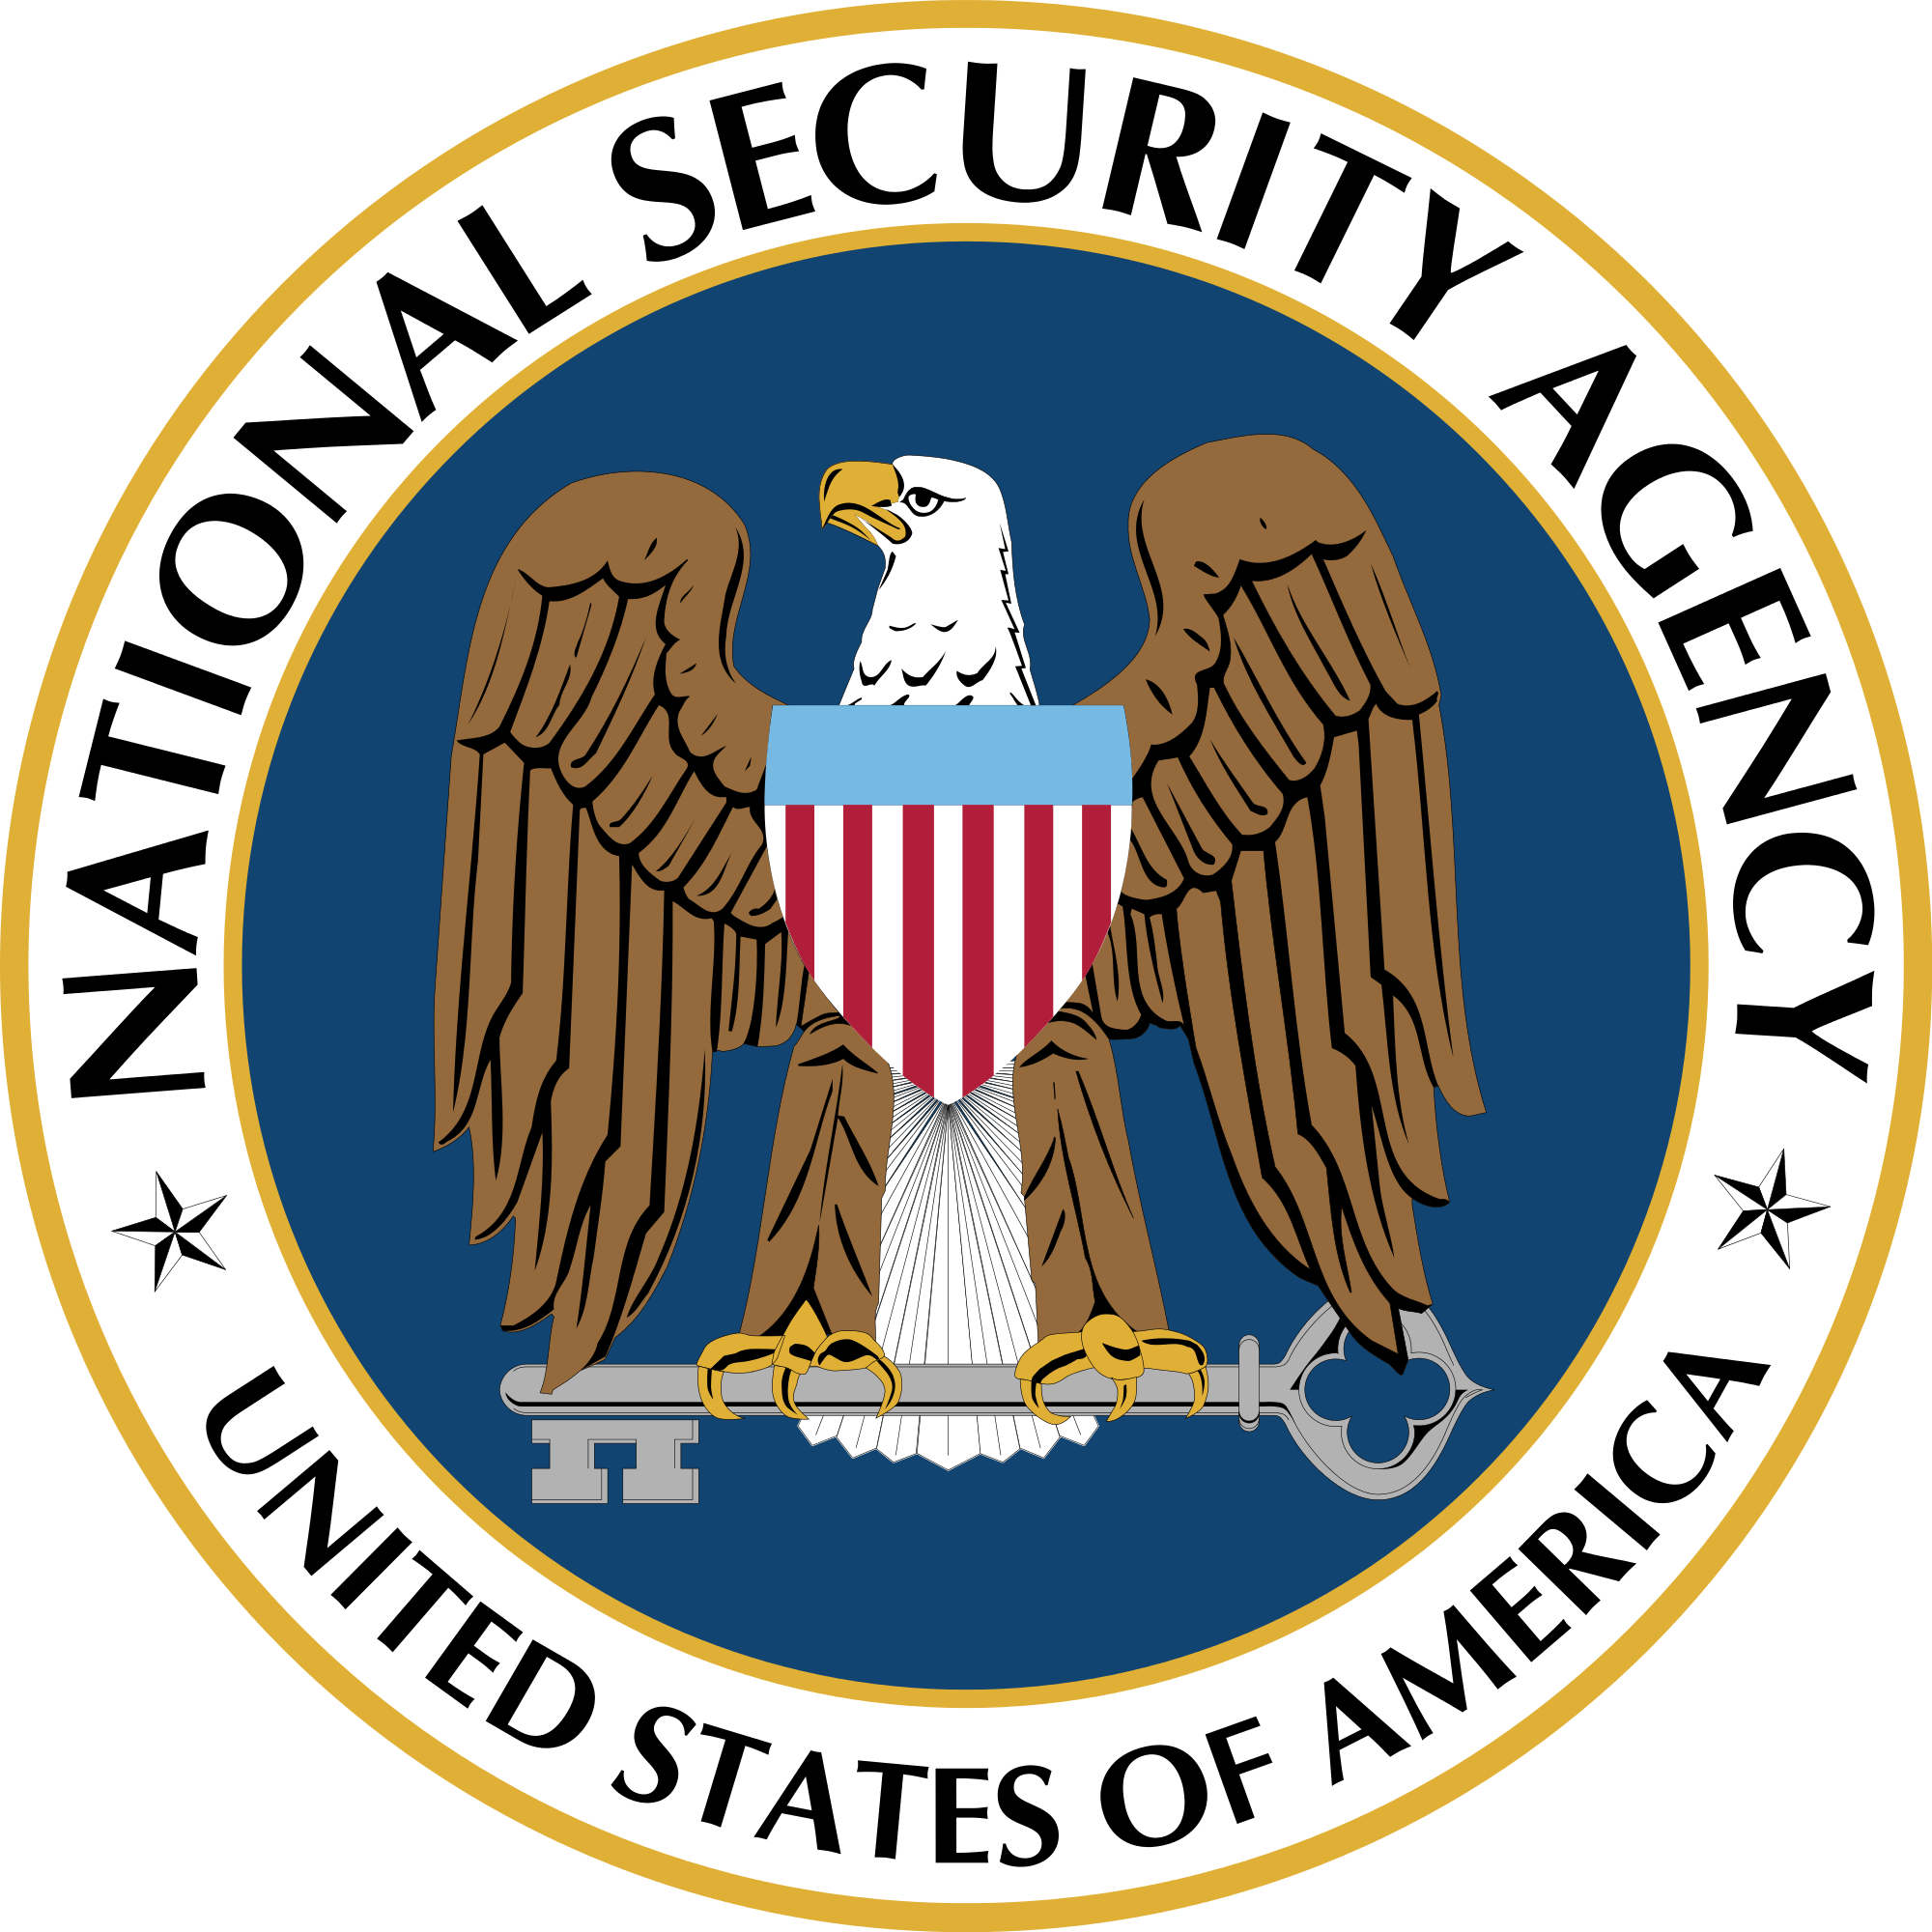 National Security Agency (NSA) Logo